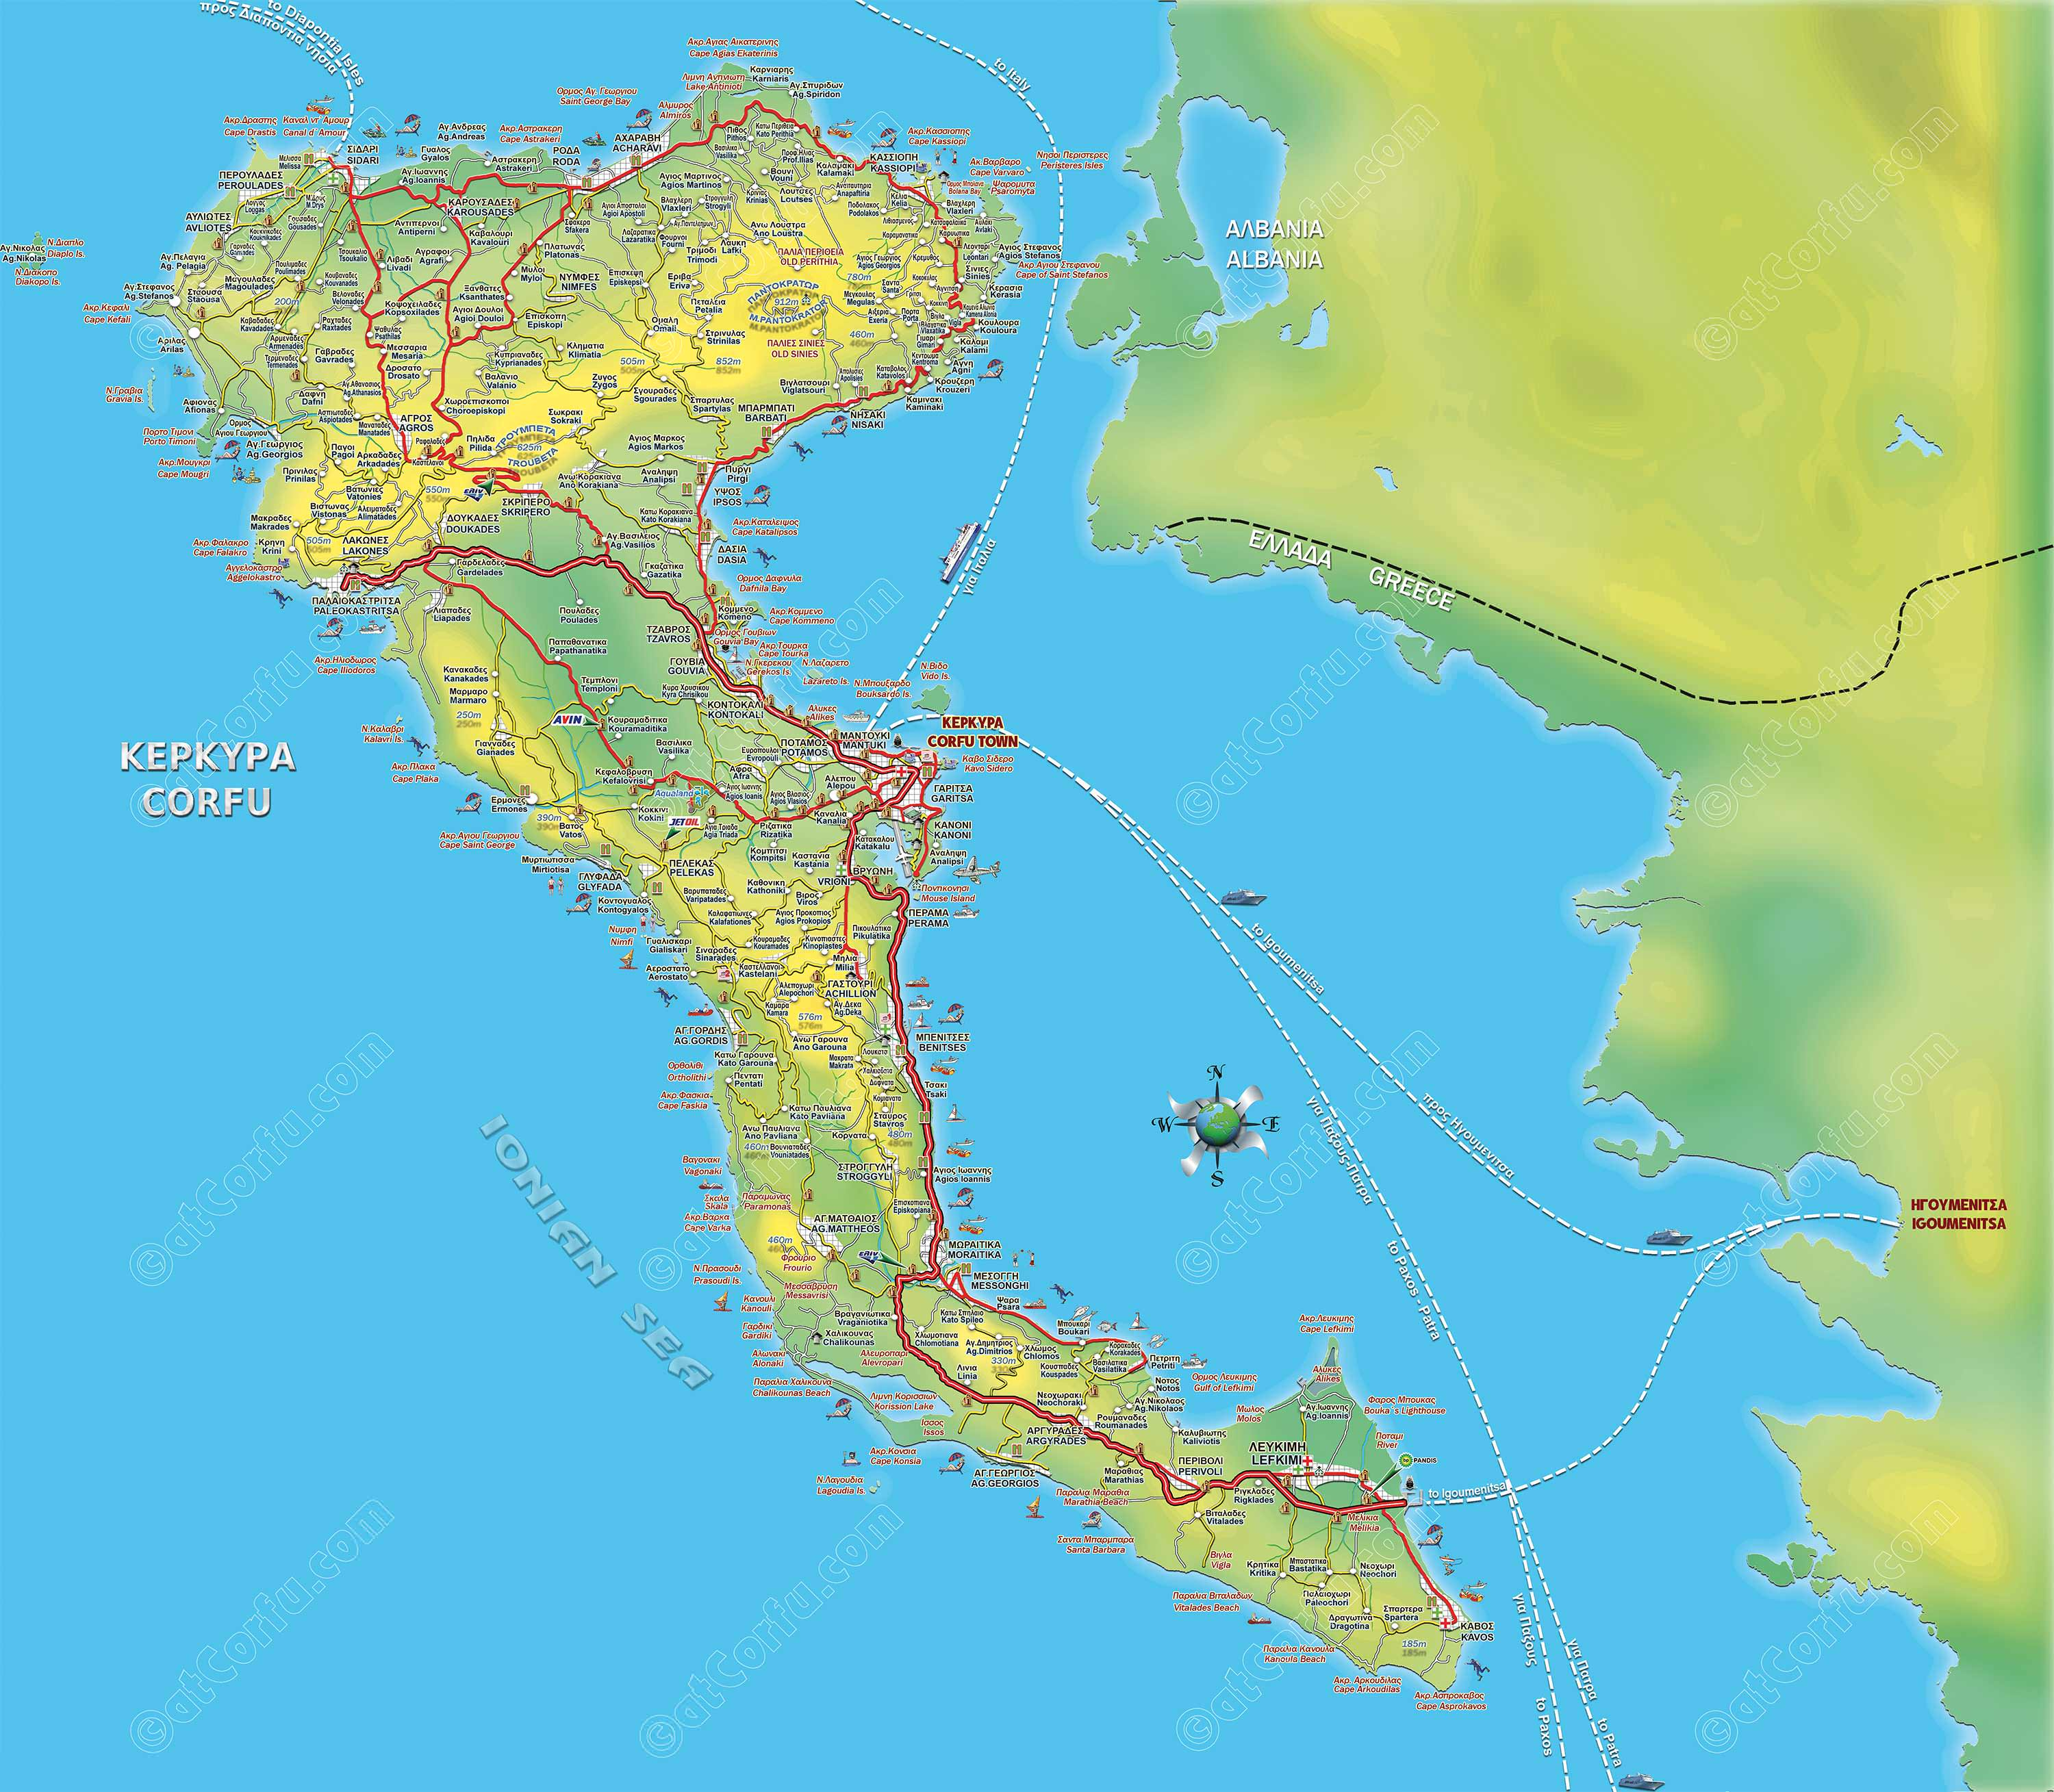 Corfu island road map atCorfucom